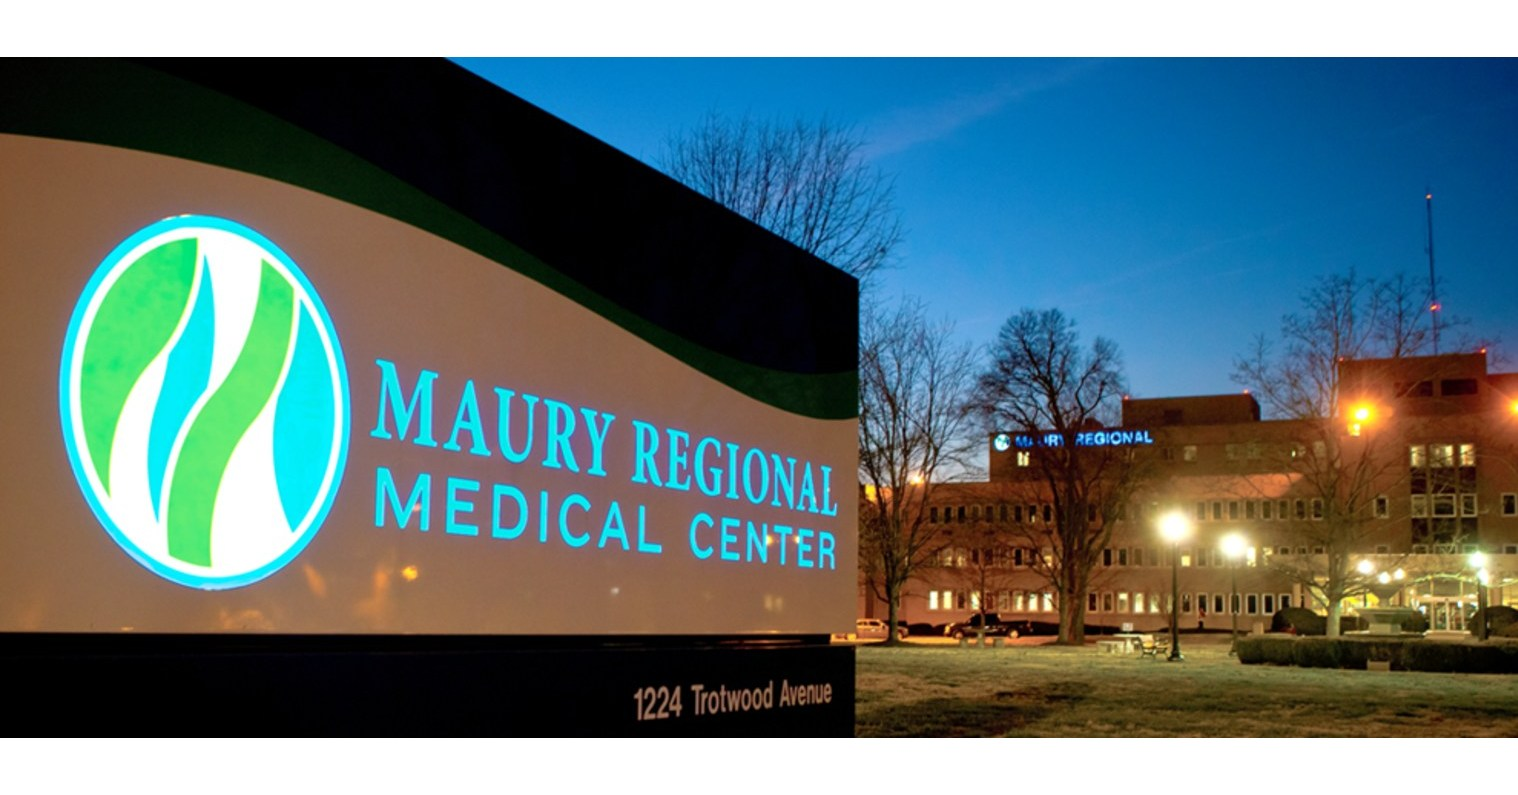 identify six stakeholders groups for riverview regional medical center